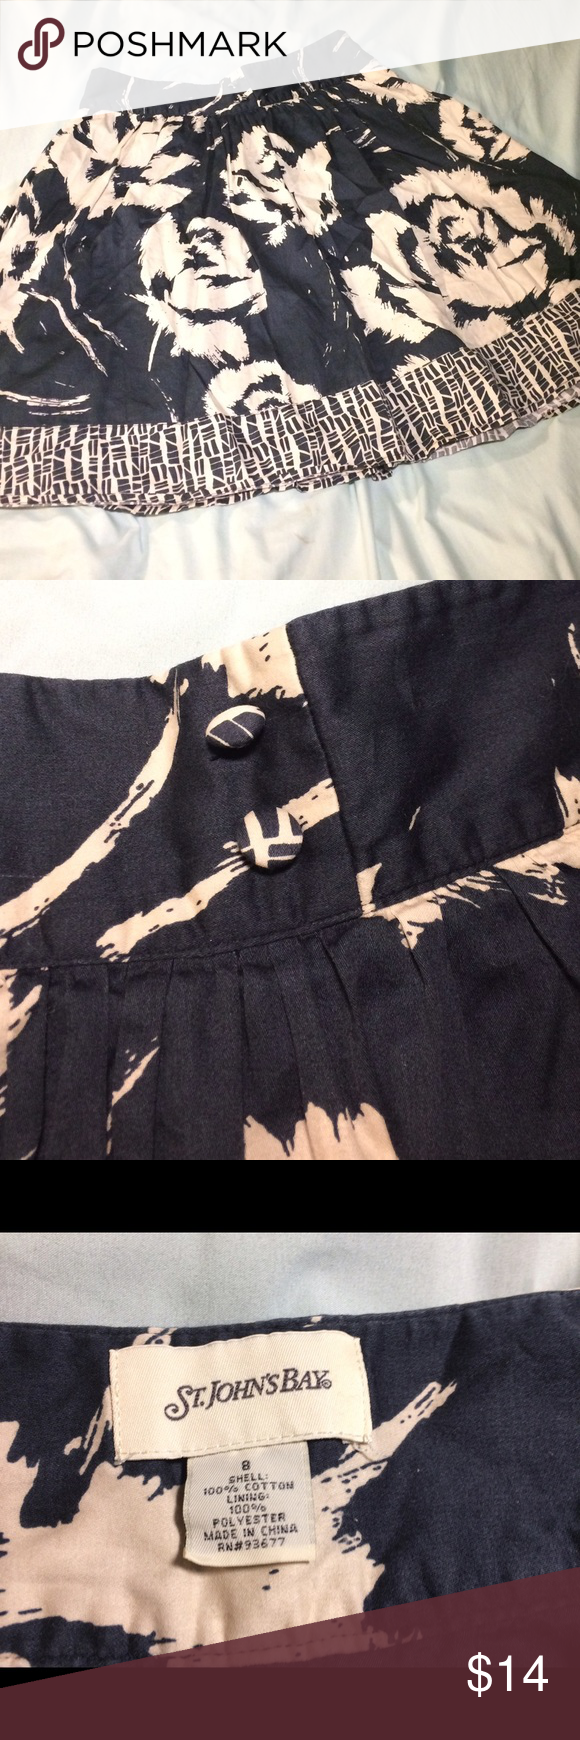 Navy and White Floral Swing Skirt Gorgeous Navy and White Floral swing skirt. Size 8, re-posh, was just too big for me. Very gently worn, soft cotton material. Button detail and side zipper Skirts A-Line or Full